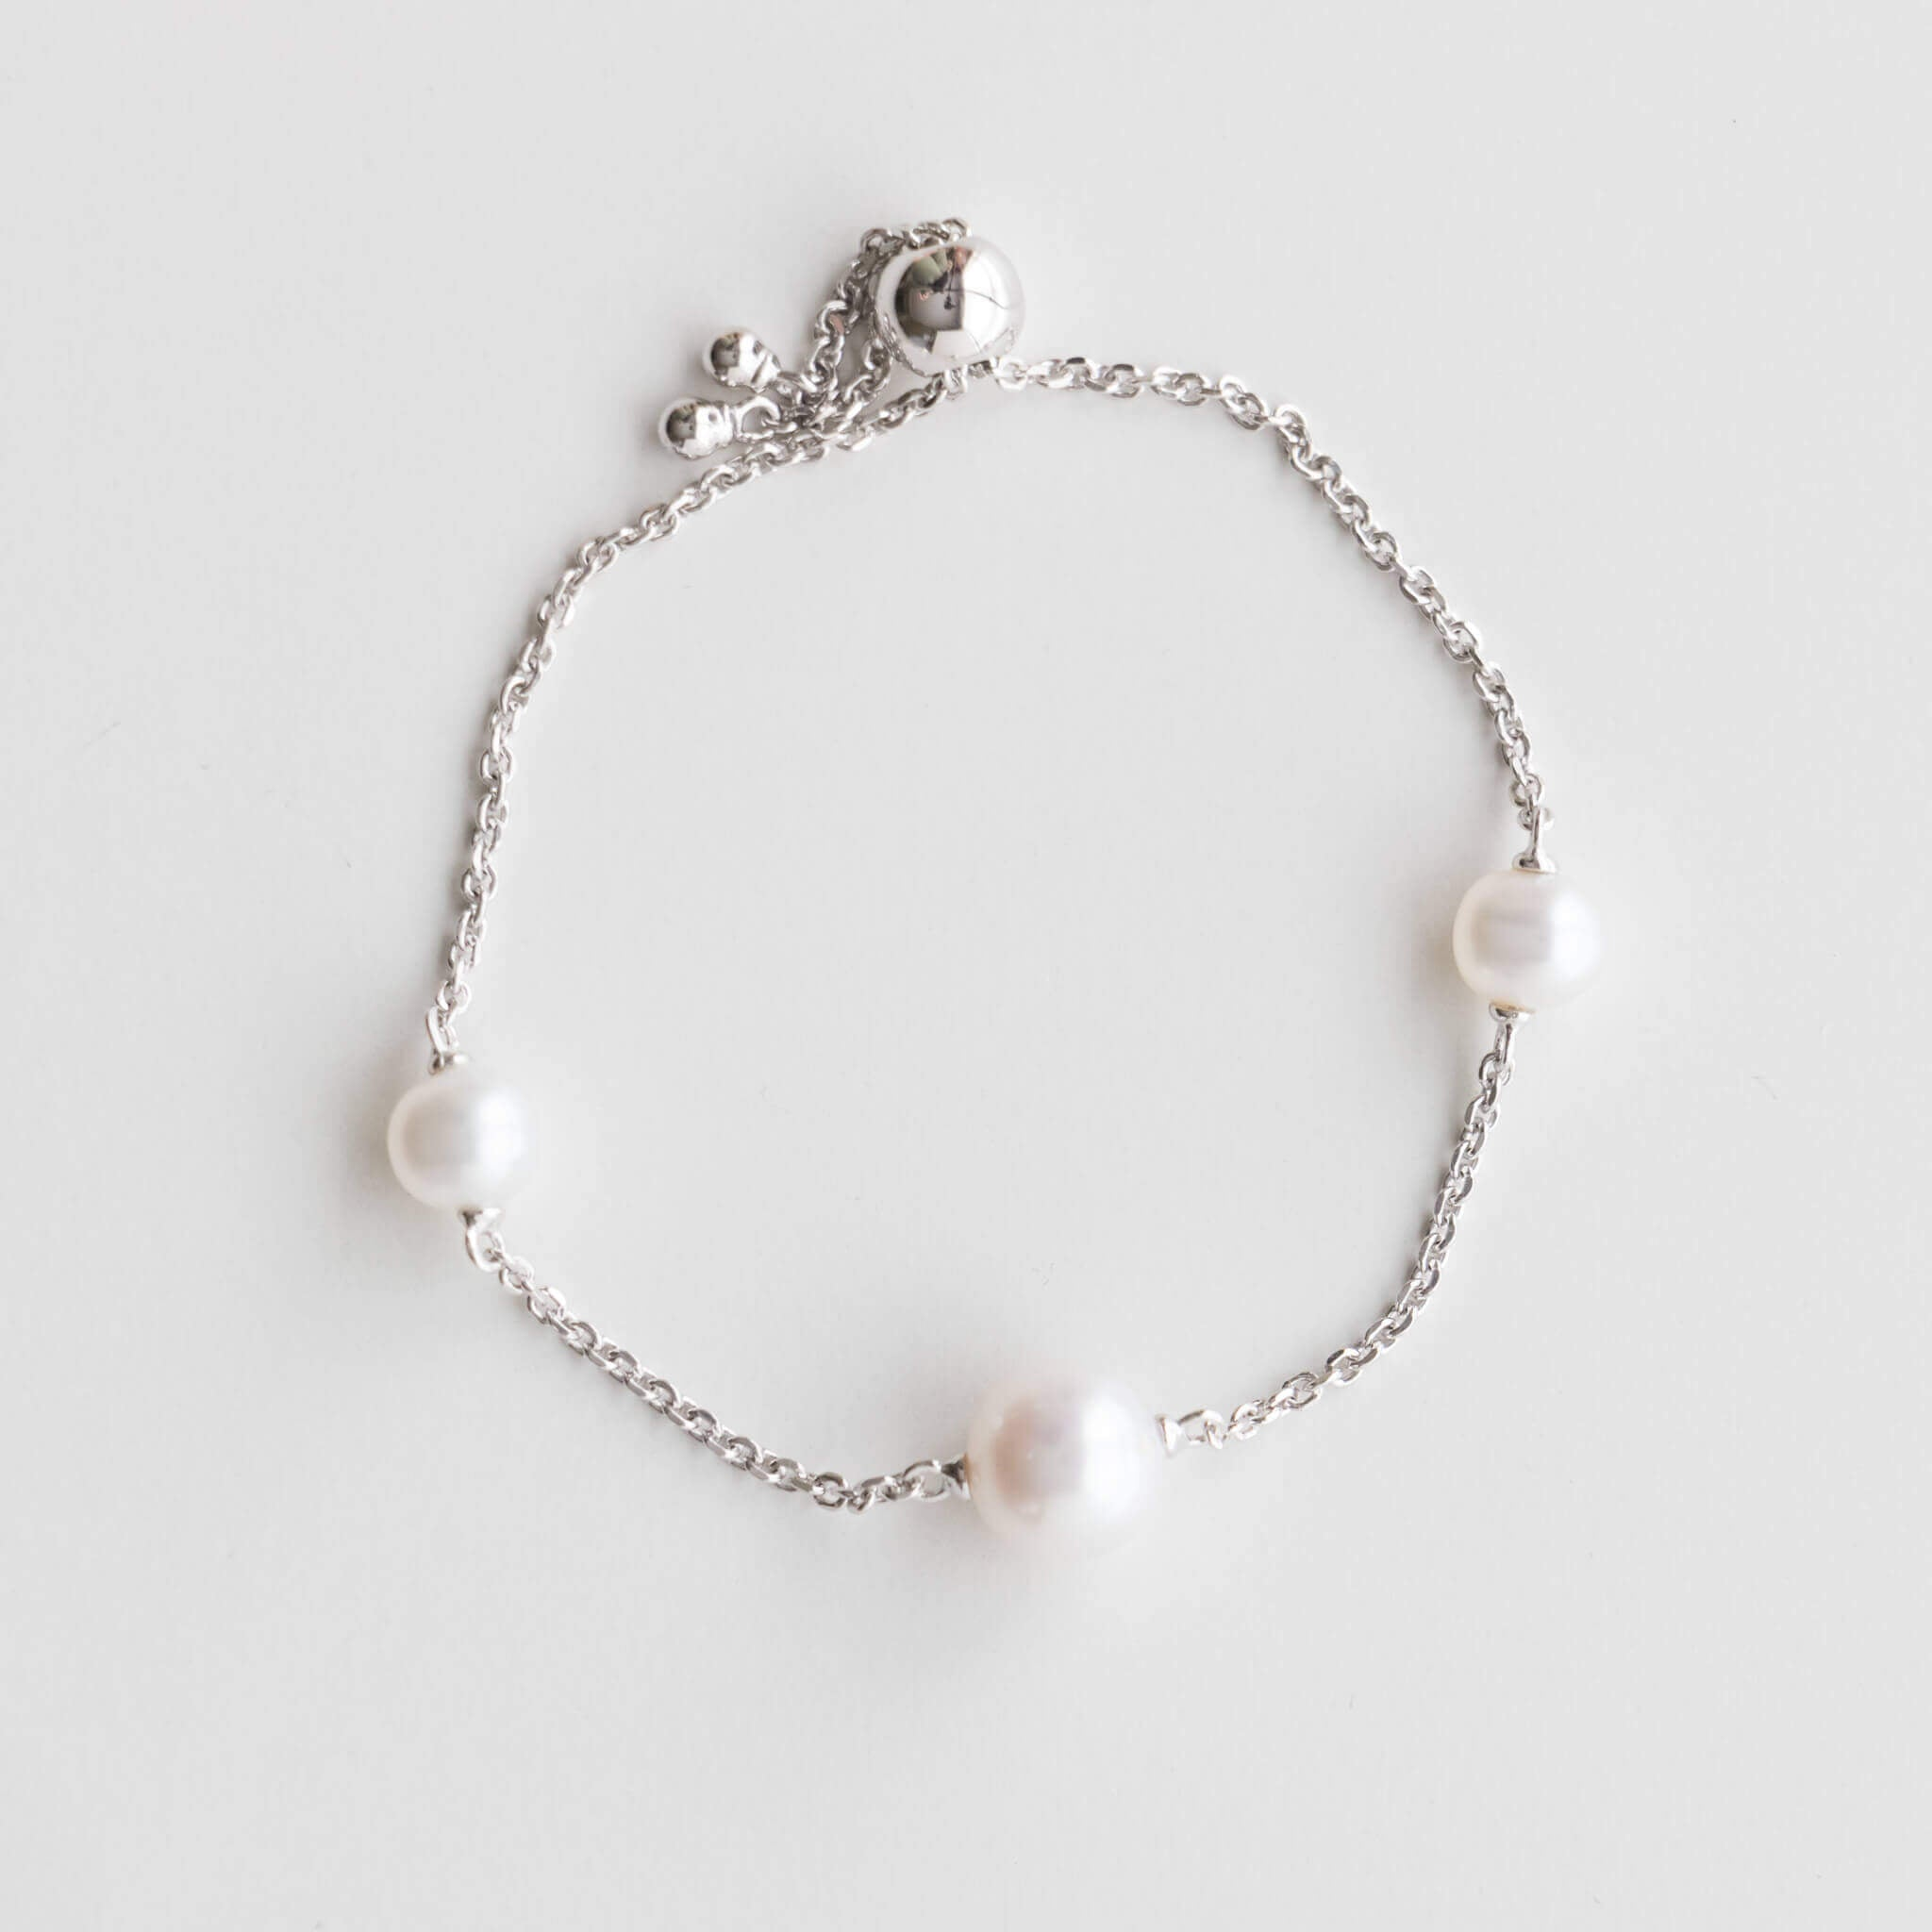 Sterling Silver Bolo Bracelet with 6.5mm to 9mm White Pearls